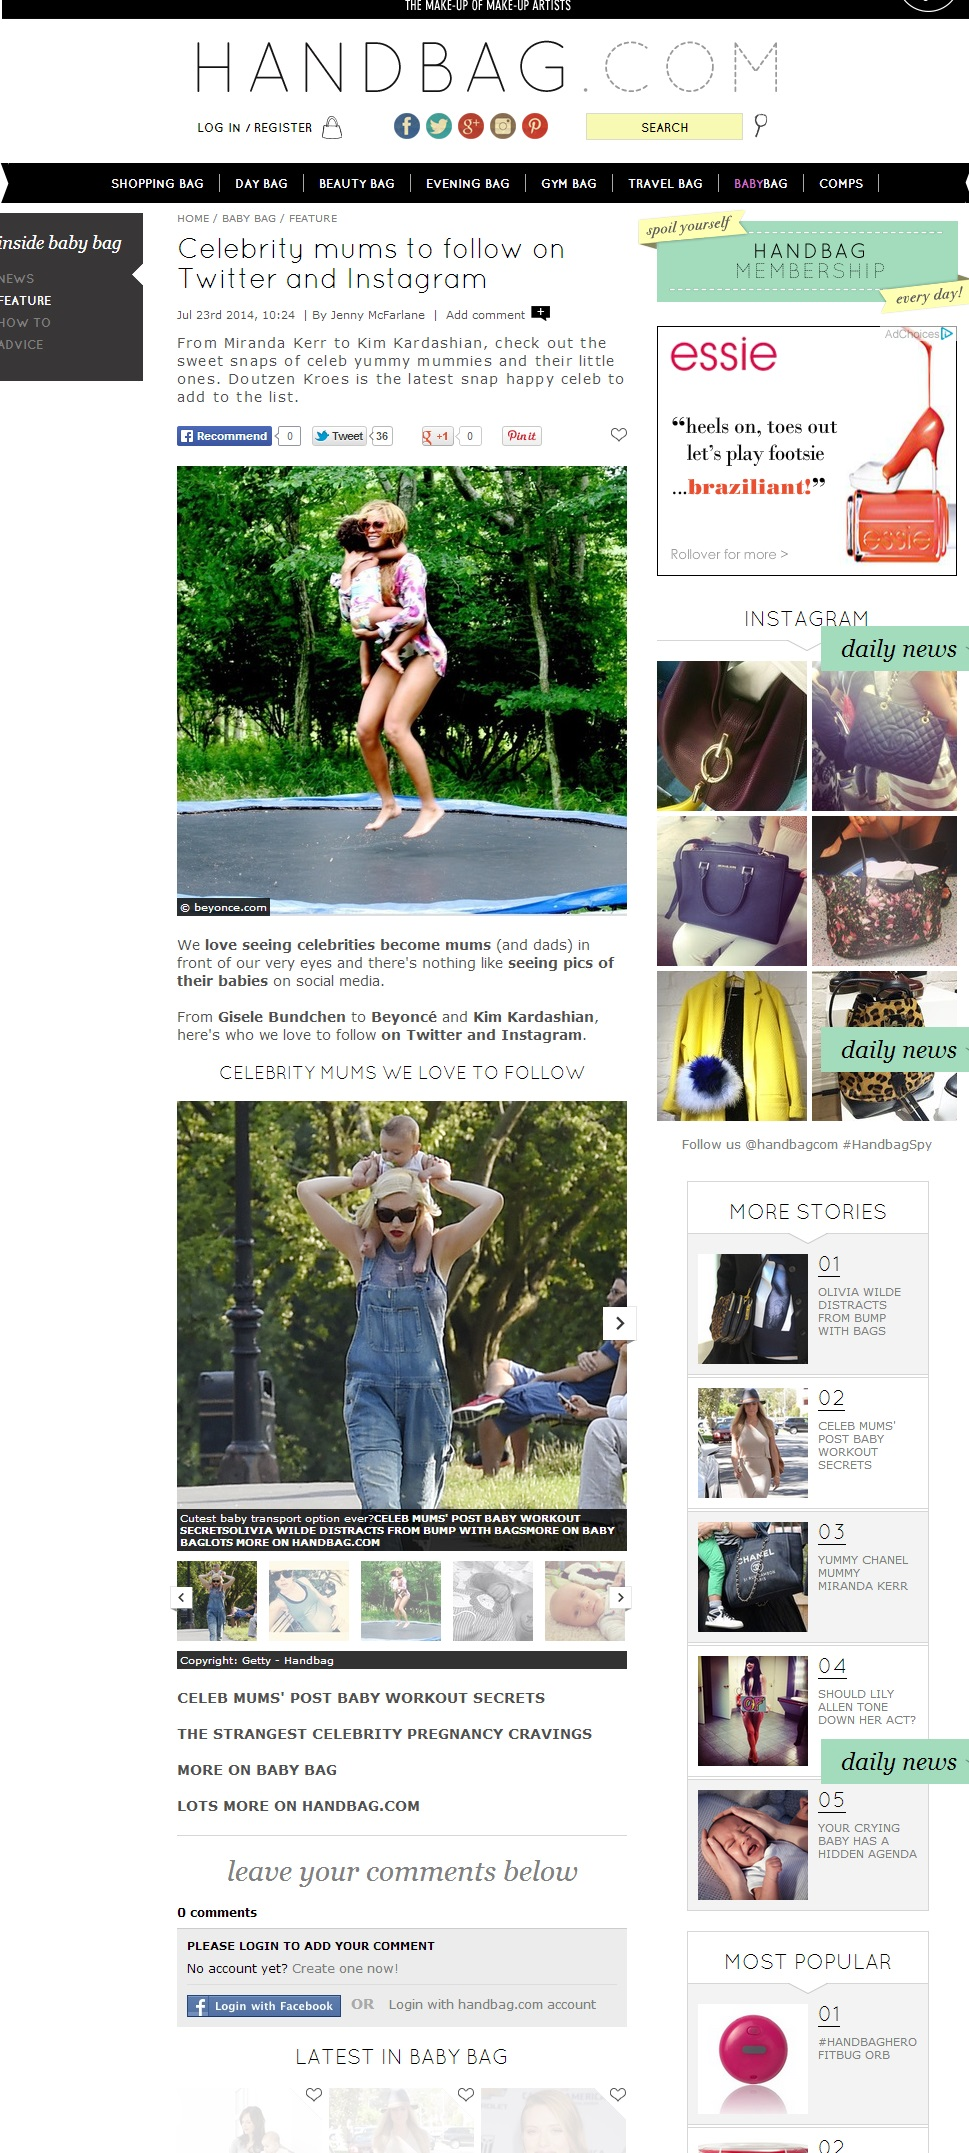 screencapture-www-handbag-com-baby-bag-feature-a565385-celebrity-mums-to-follow-on-twitter-and-instagram-html